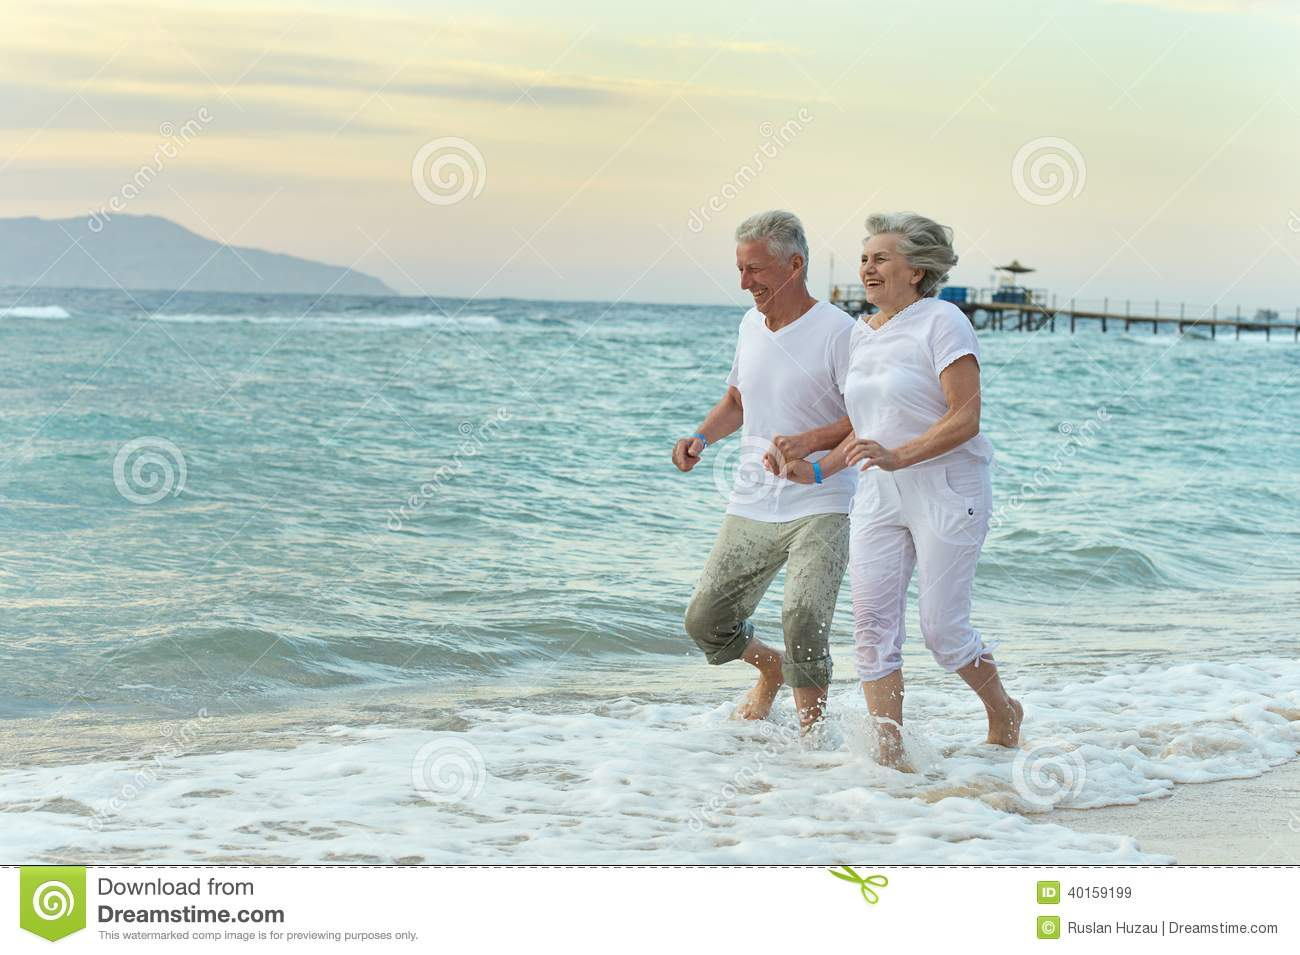 naket nice beach couple